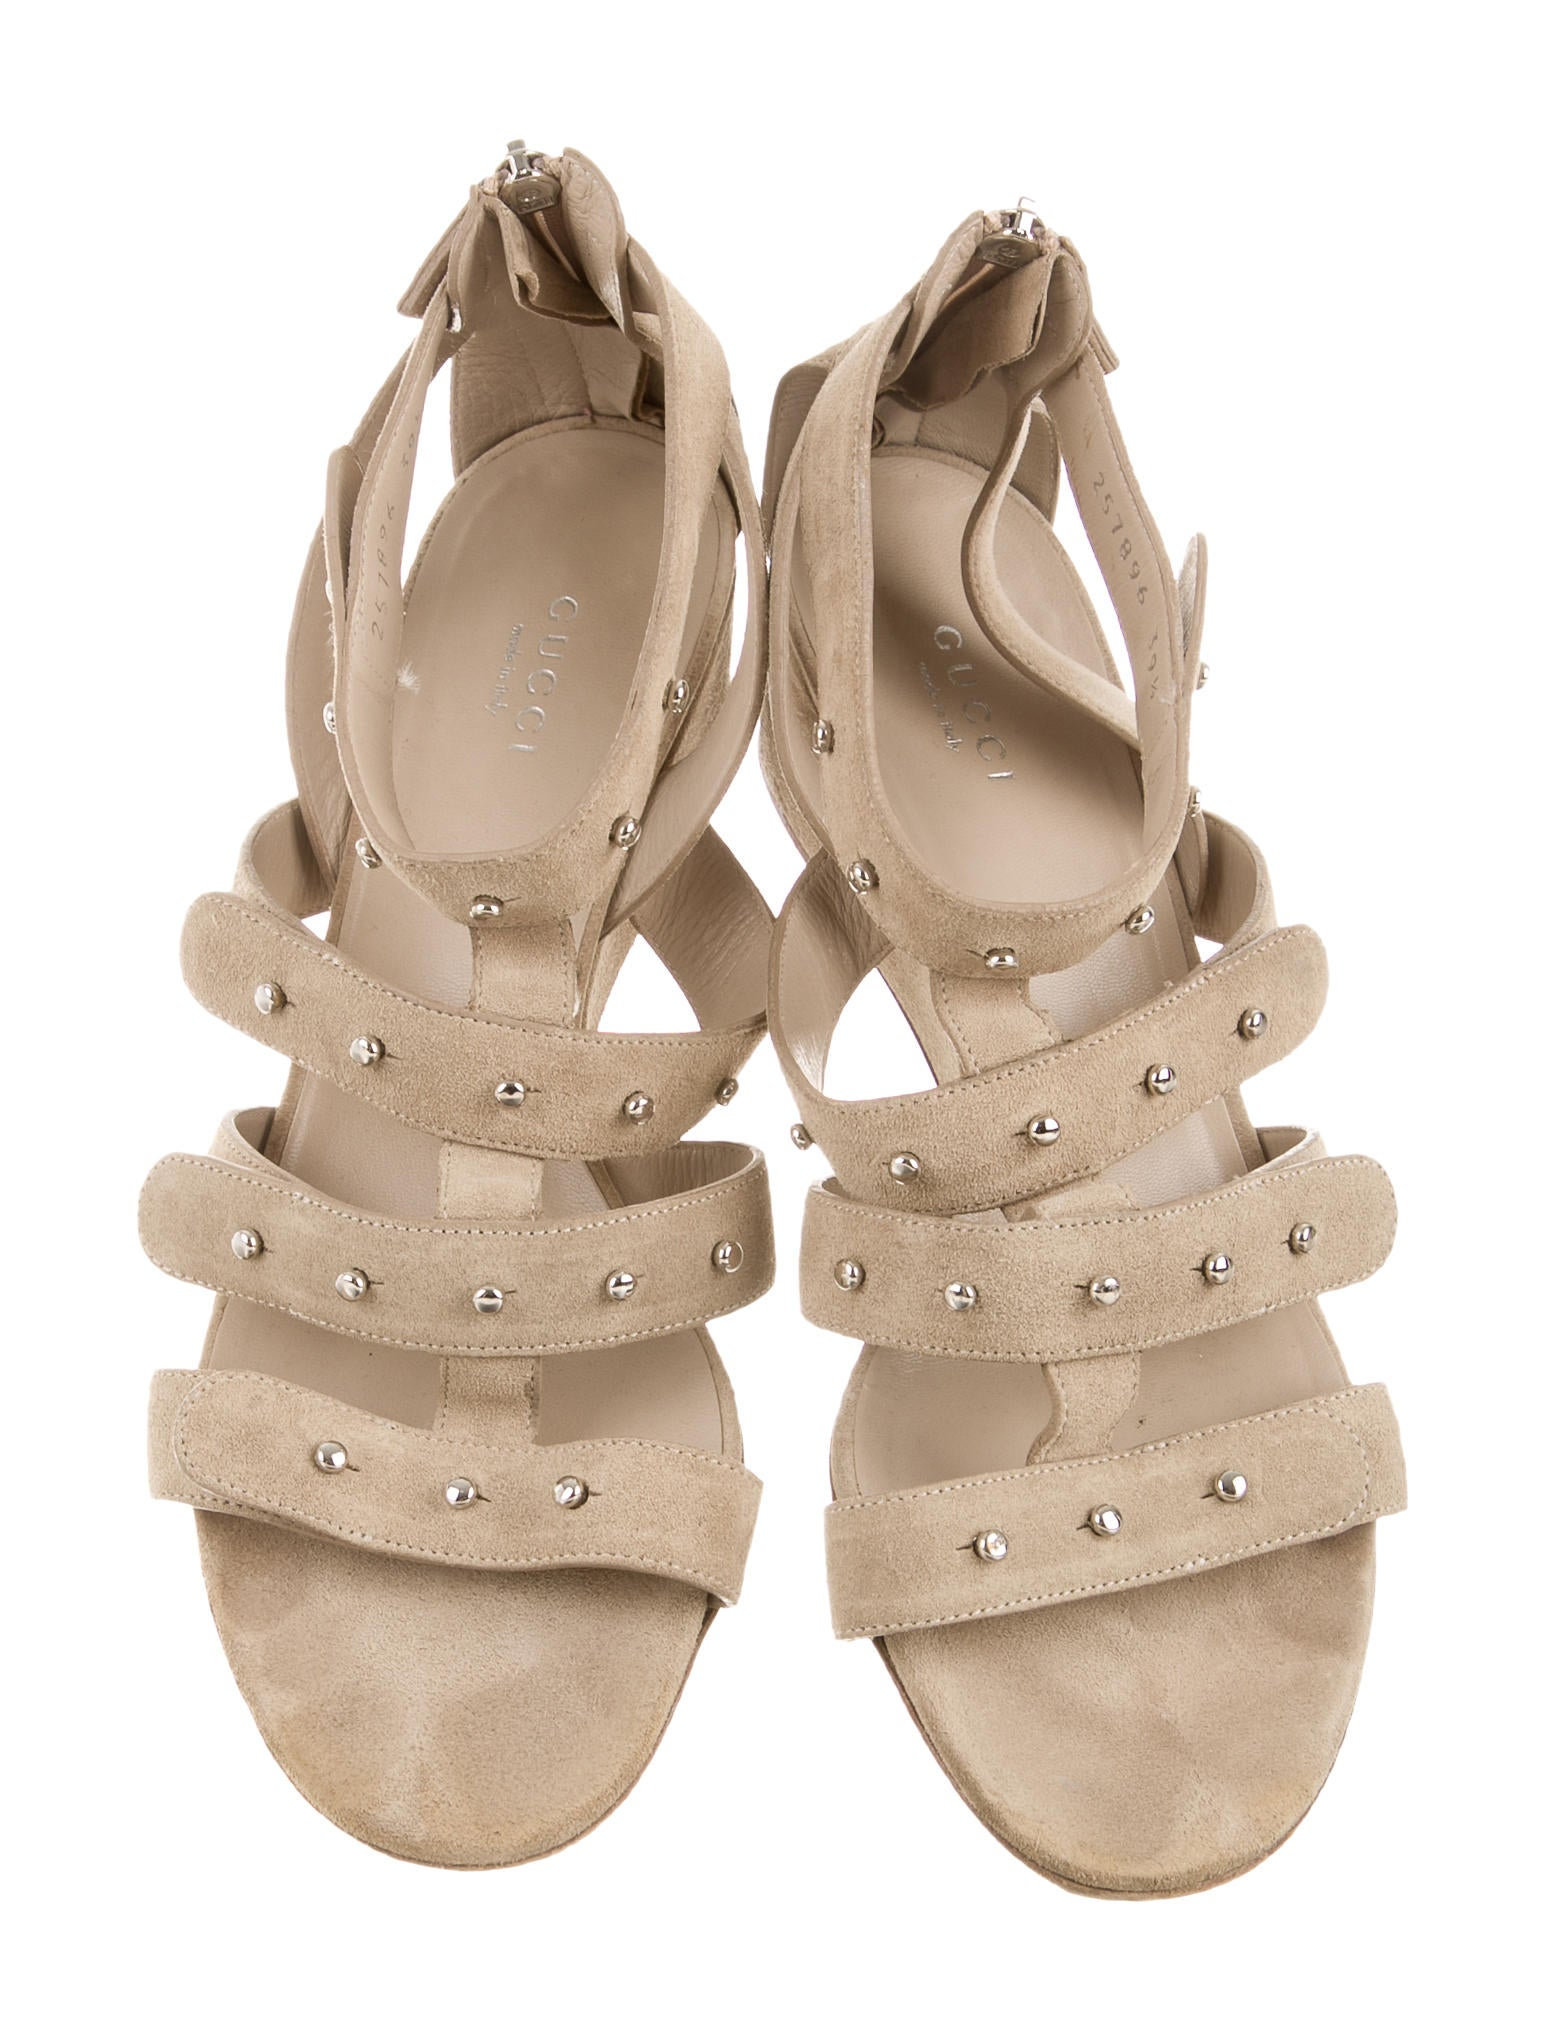 gucci suede studded sandals shoes guc108092 the realreal